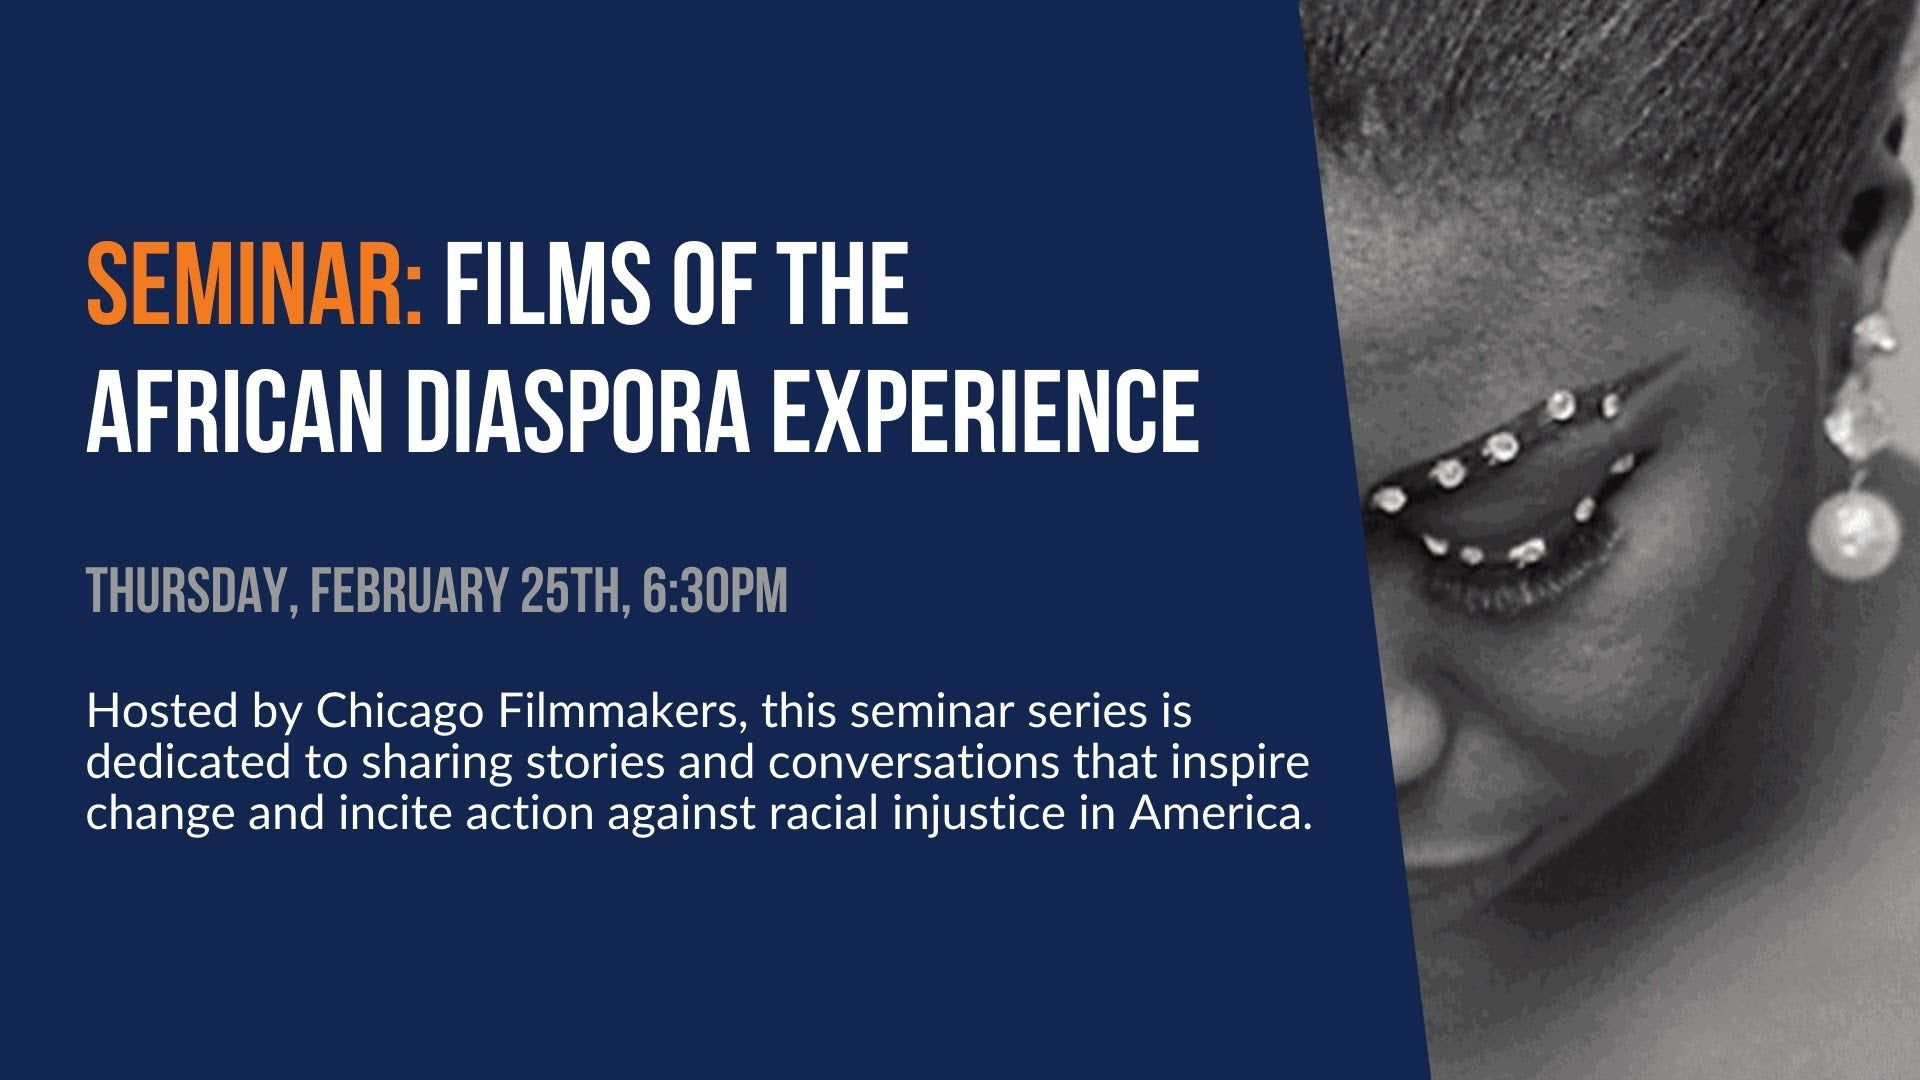 Seminar: Films of the African Diaspora Experience. Thursday, February 25th, 6:30pm. Hosted by Chicago Filmmakers, this seminar series is dedicated to sharing stories and conversations that inspire change and incite action against racial injustice in America.